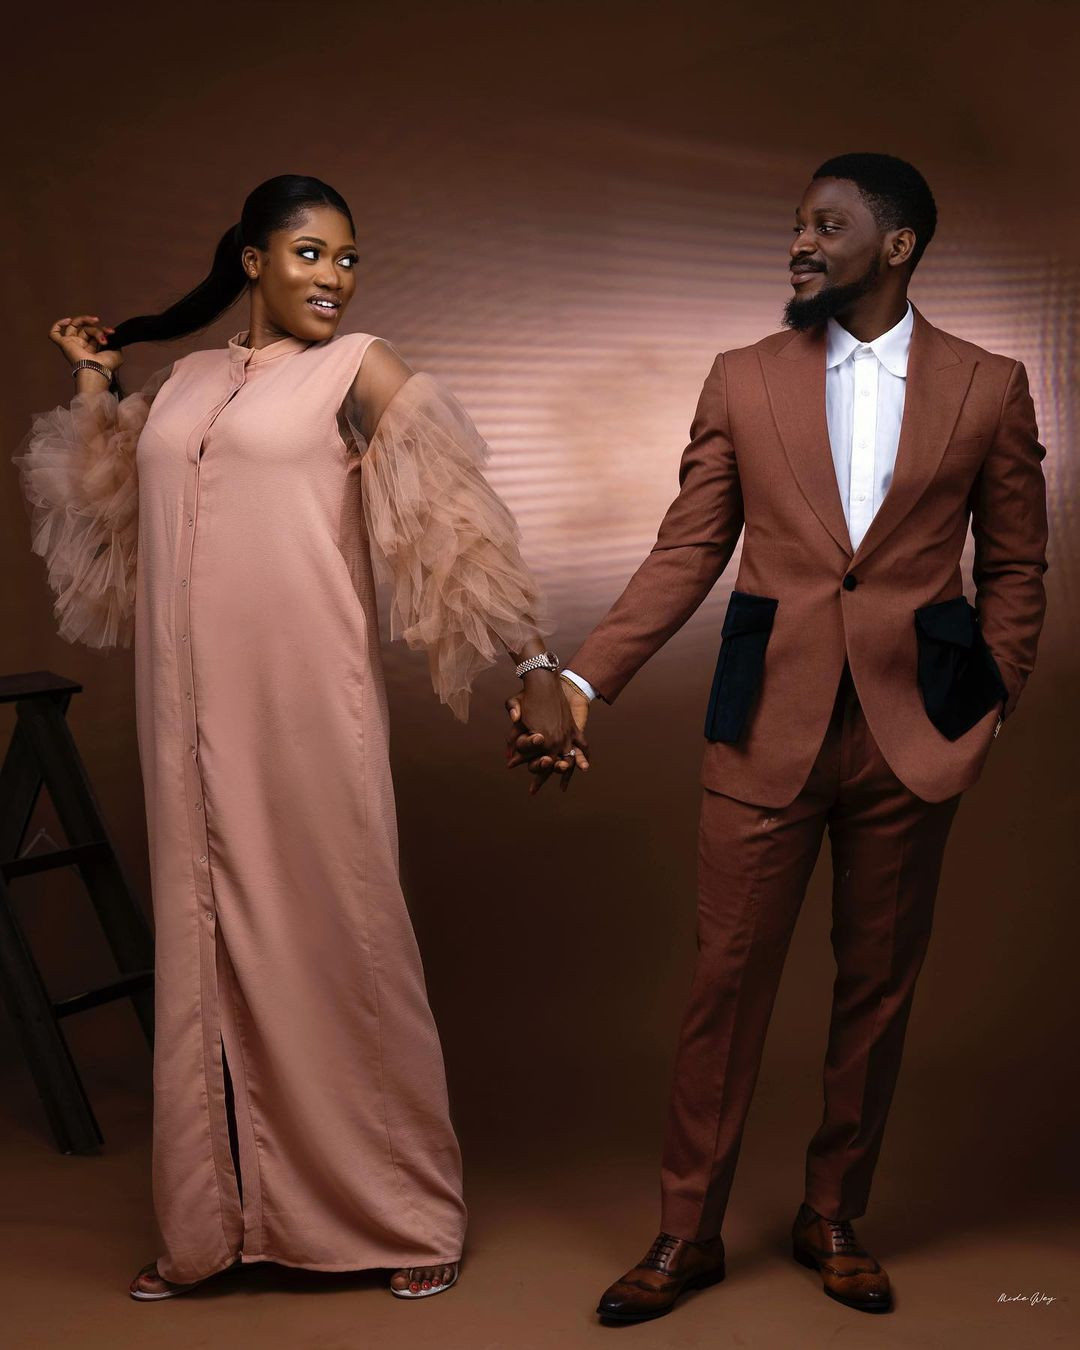 ''I prayed and you came'' Tobi Bakare, gushes over his bride-to-be as he shares more pre-wedding photos